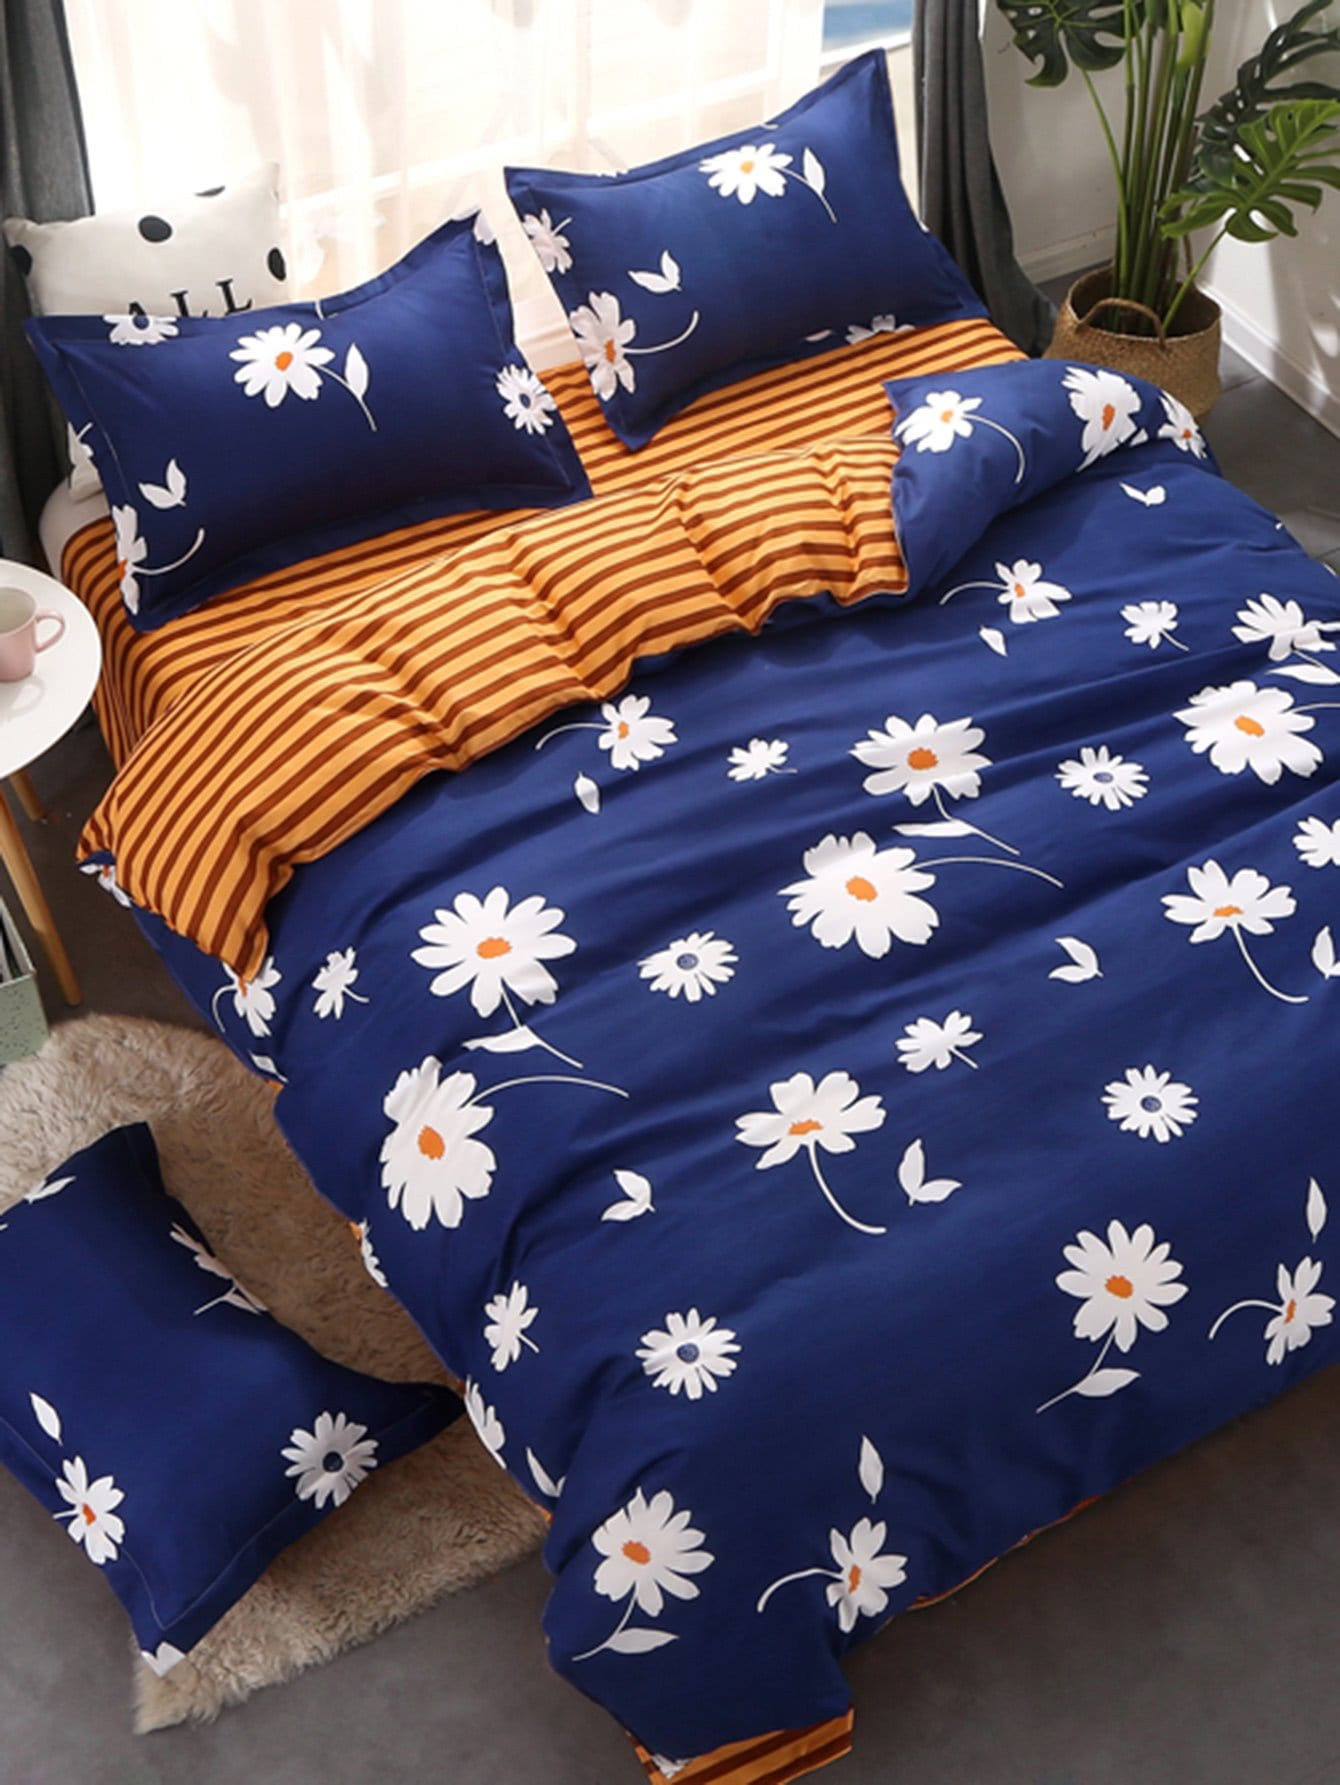 Flower & Striped Print Bedding Set vertical striped bedding set